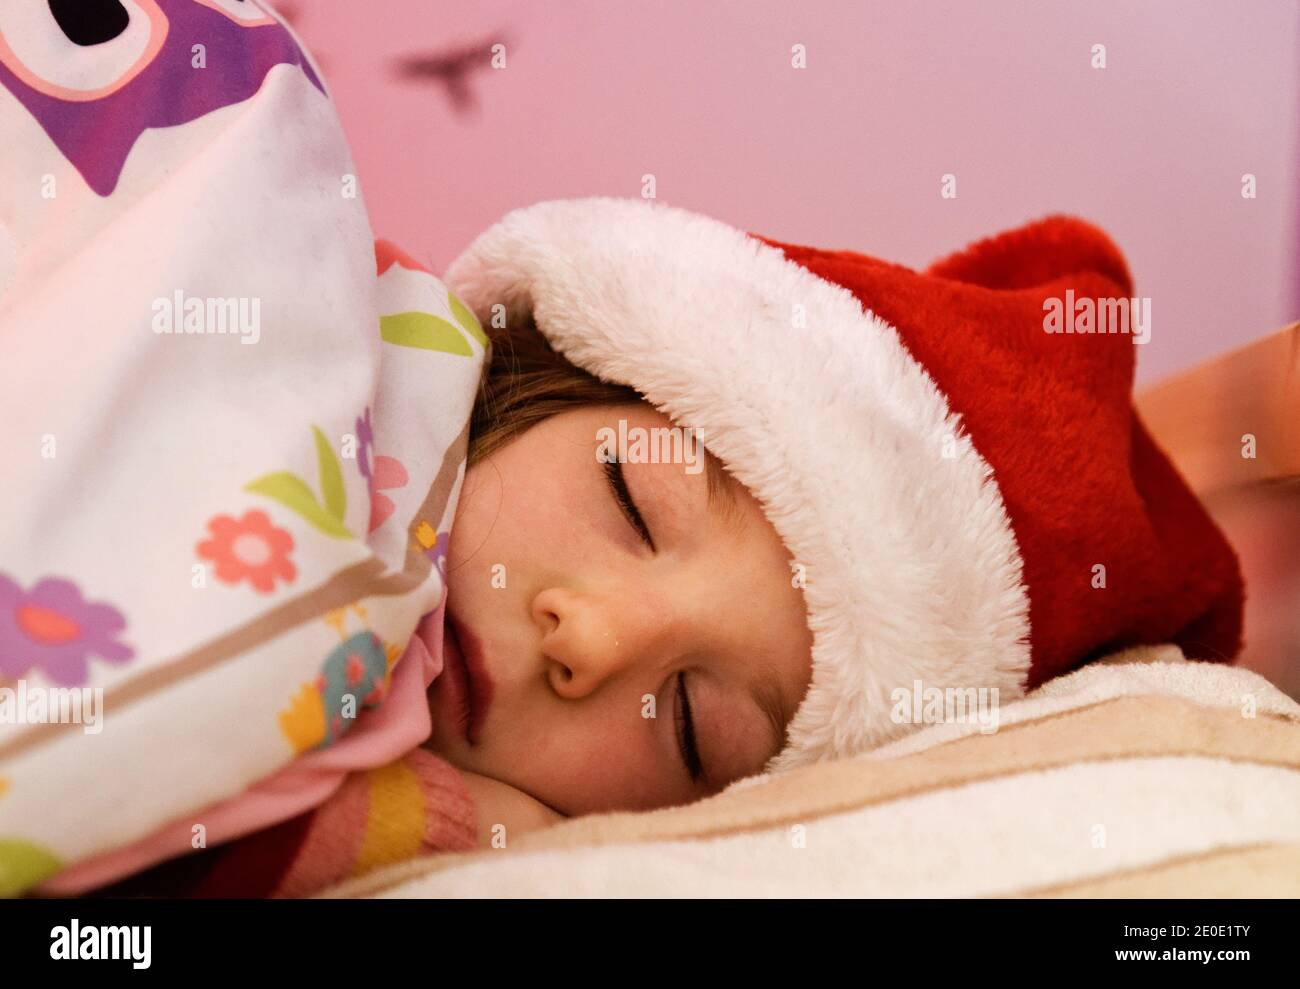 A little girl (6 yr old) asleep in bed with her christmas hat on Stock Photo